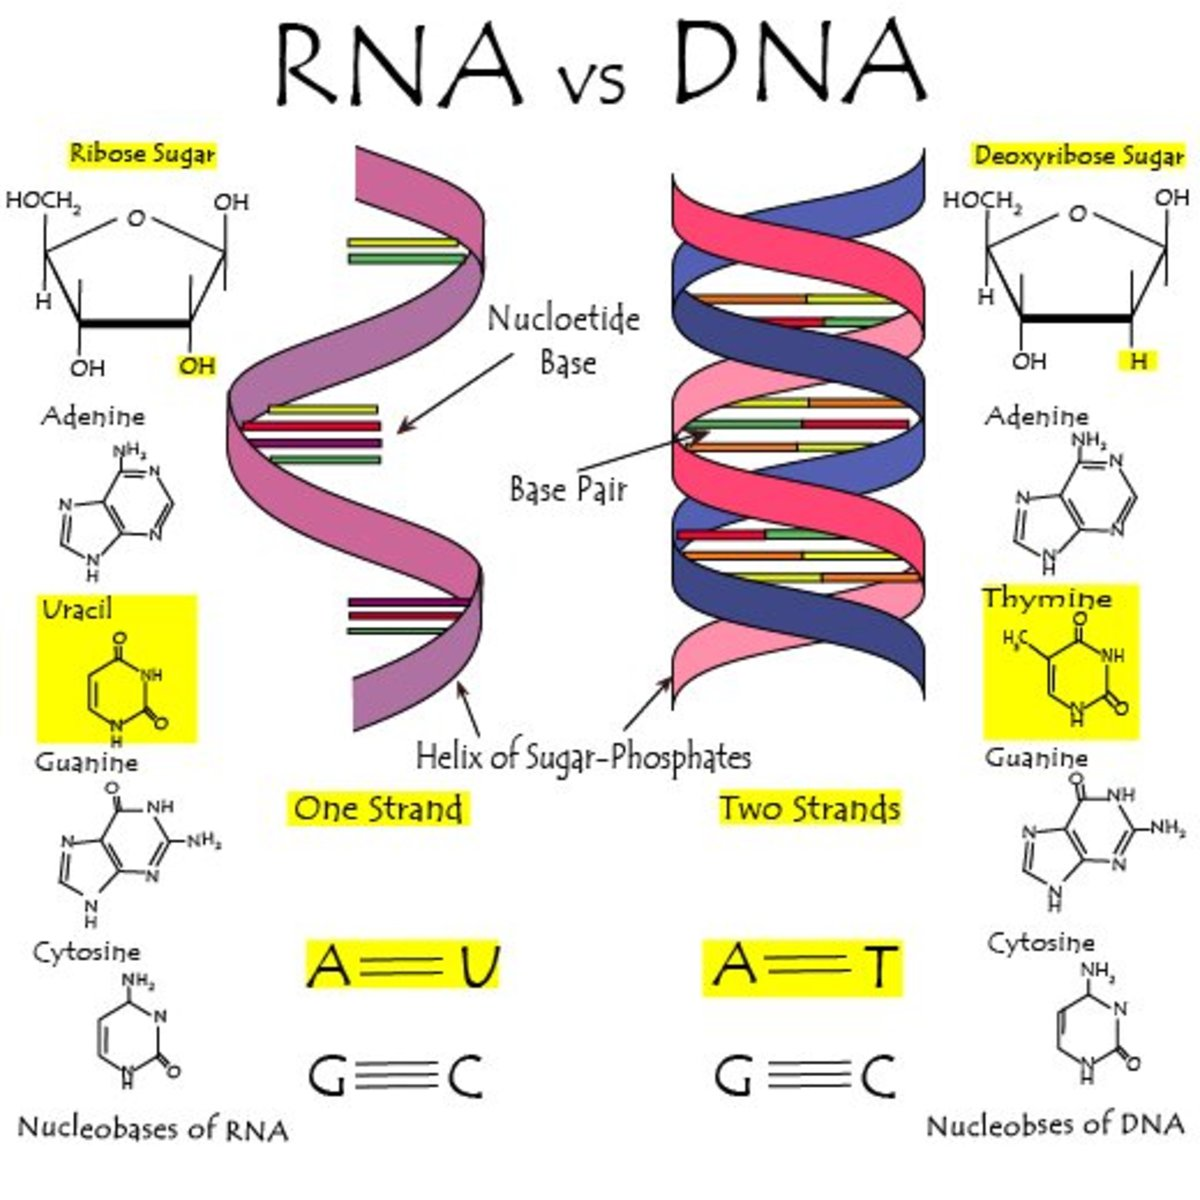 What Are the Differences Between DNA and RNA?